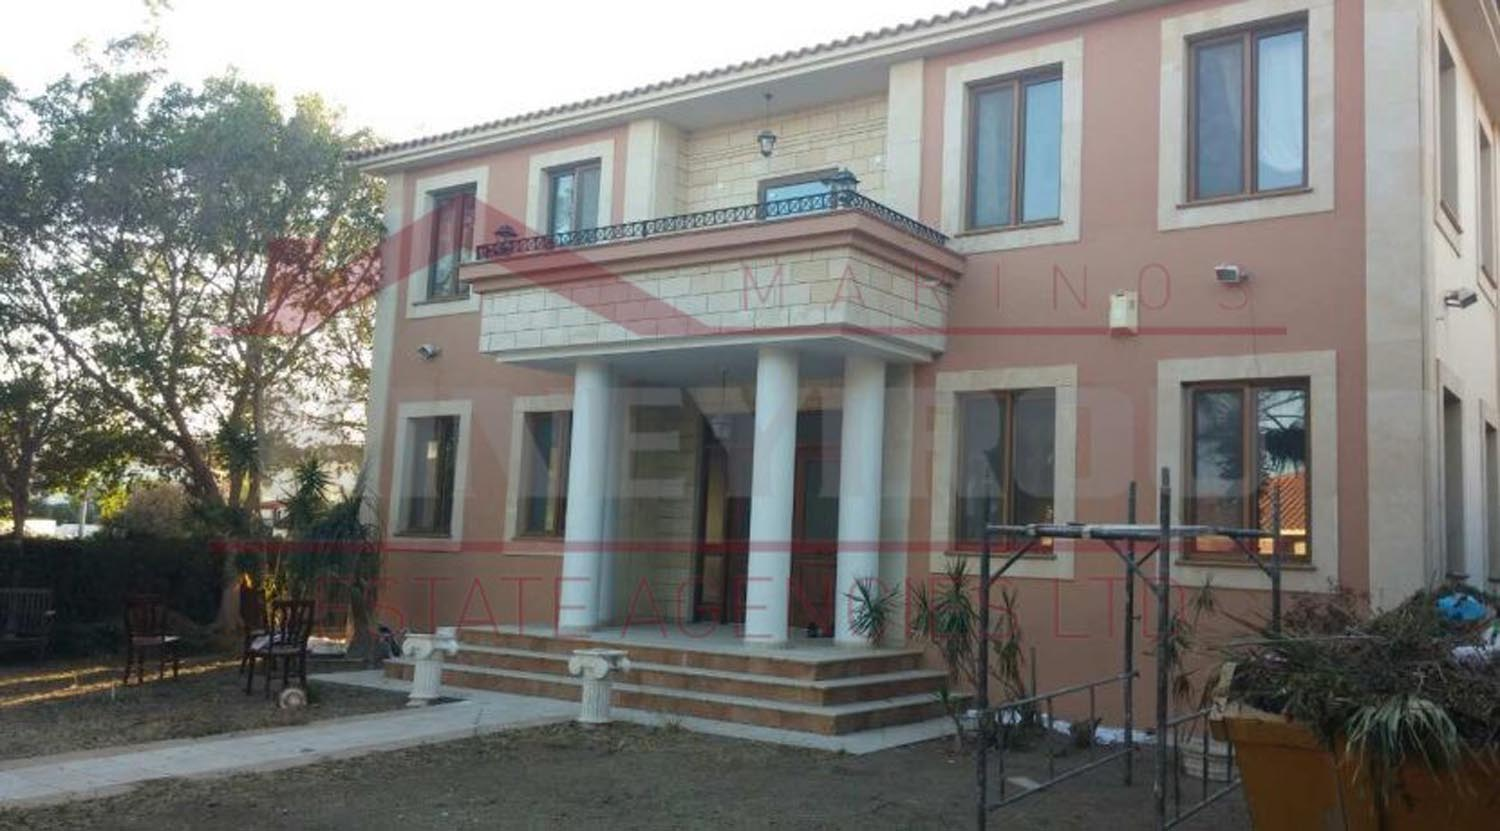 5 bedroom house for sale in Oroklini